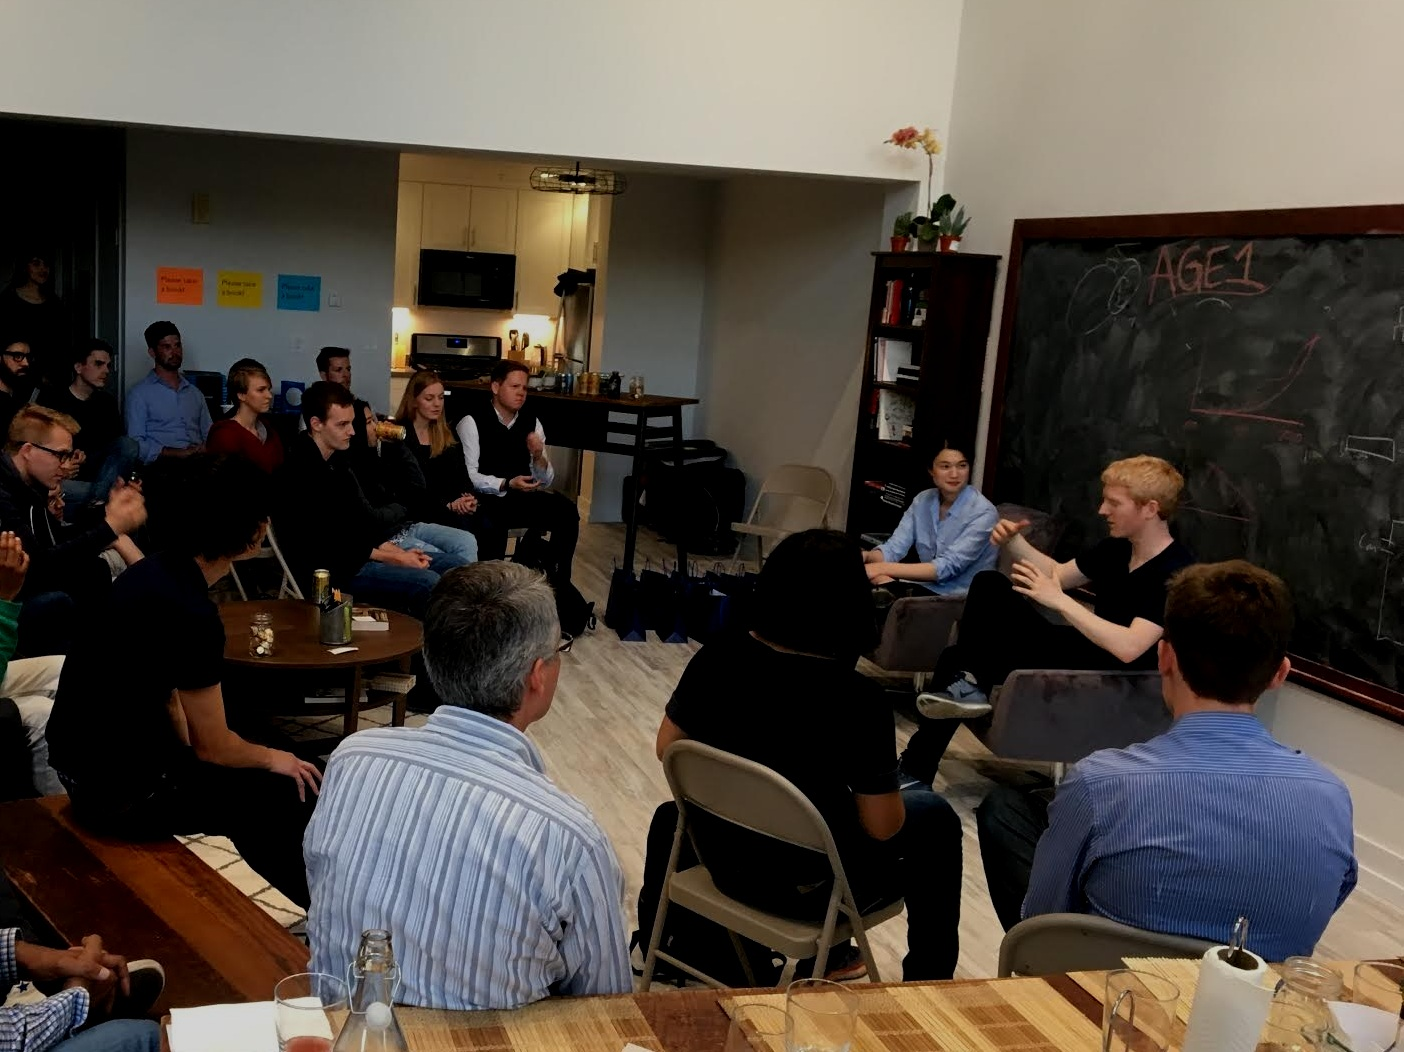 About AGE1 - AGE1 is a San Francisco based 3-month accelerator for scientists and technologists working to combat age-related disease.Learn more